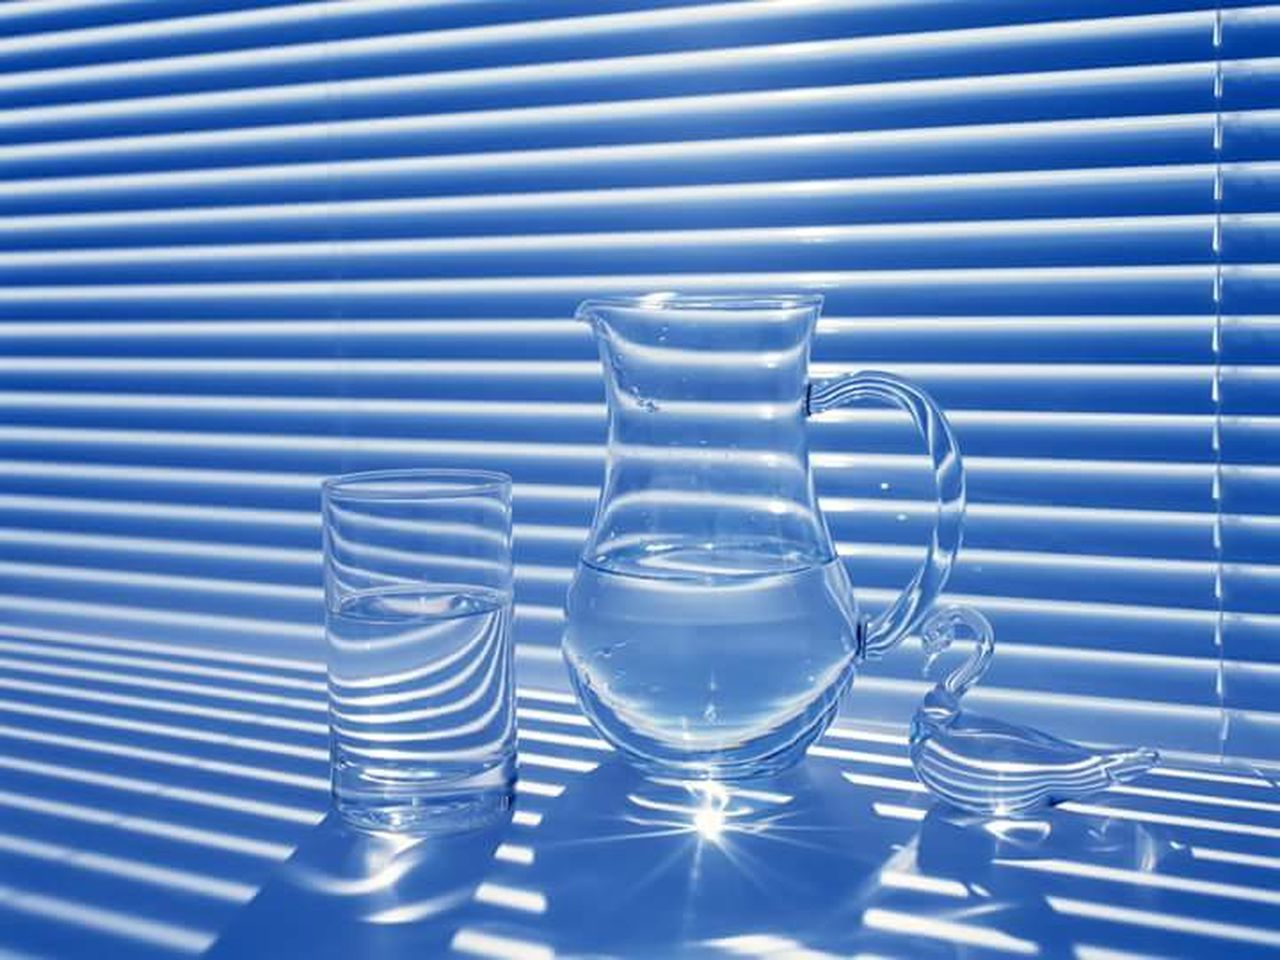 drink, food and drink, refreshment, table, drinking glass, no people, indoors, blue, close-up, day, freshness